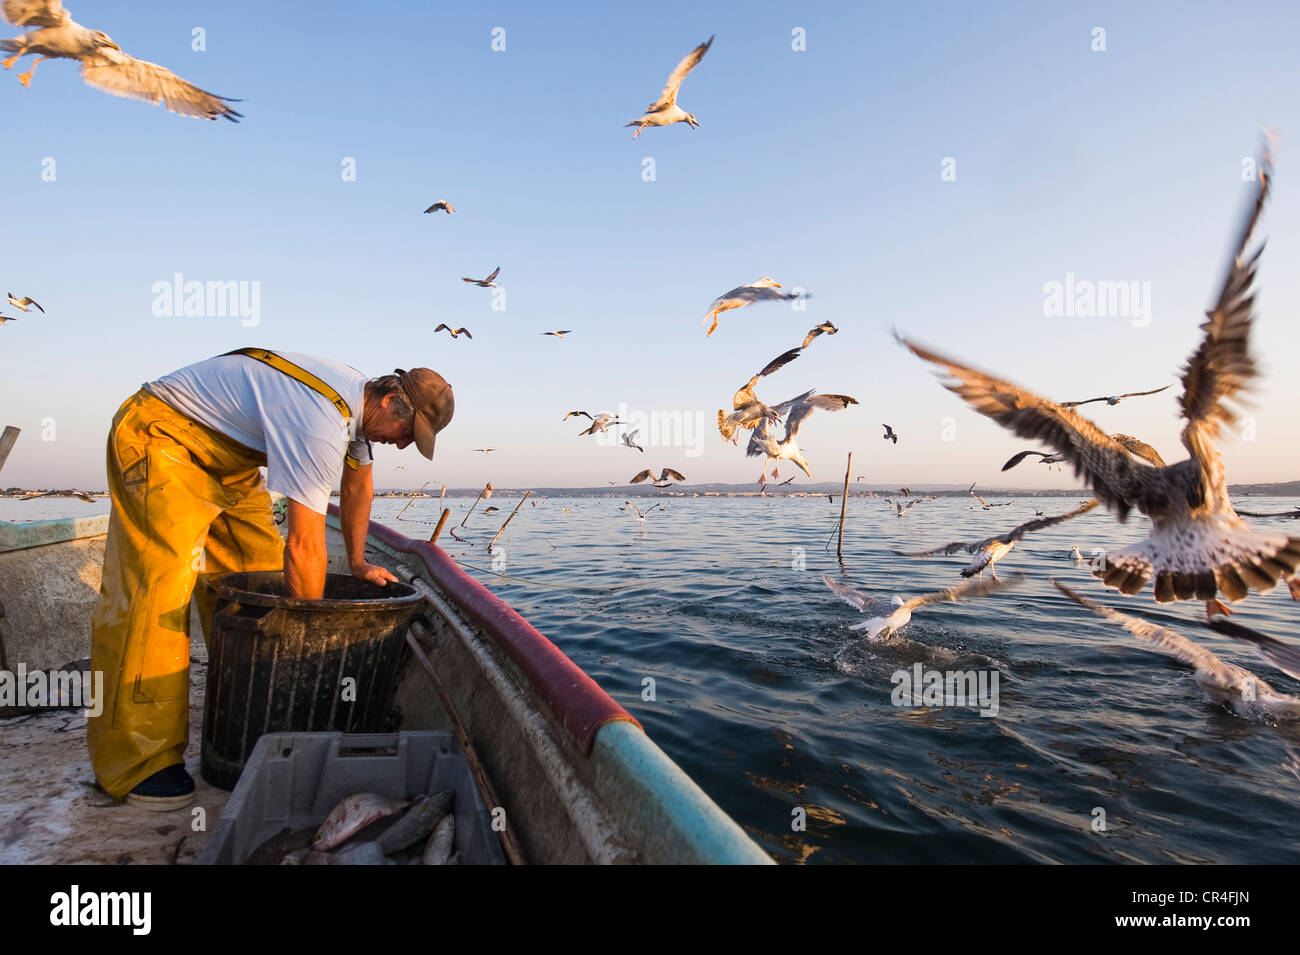 France Herault Sete Bassin de Thau fisherman surrounded by seagulls in his small boat taking out his conical fishing - Stock Image